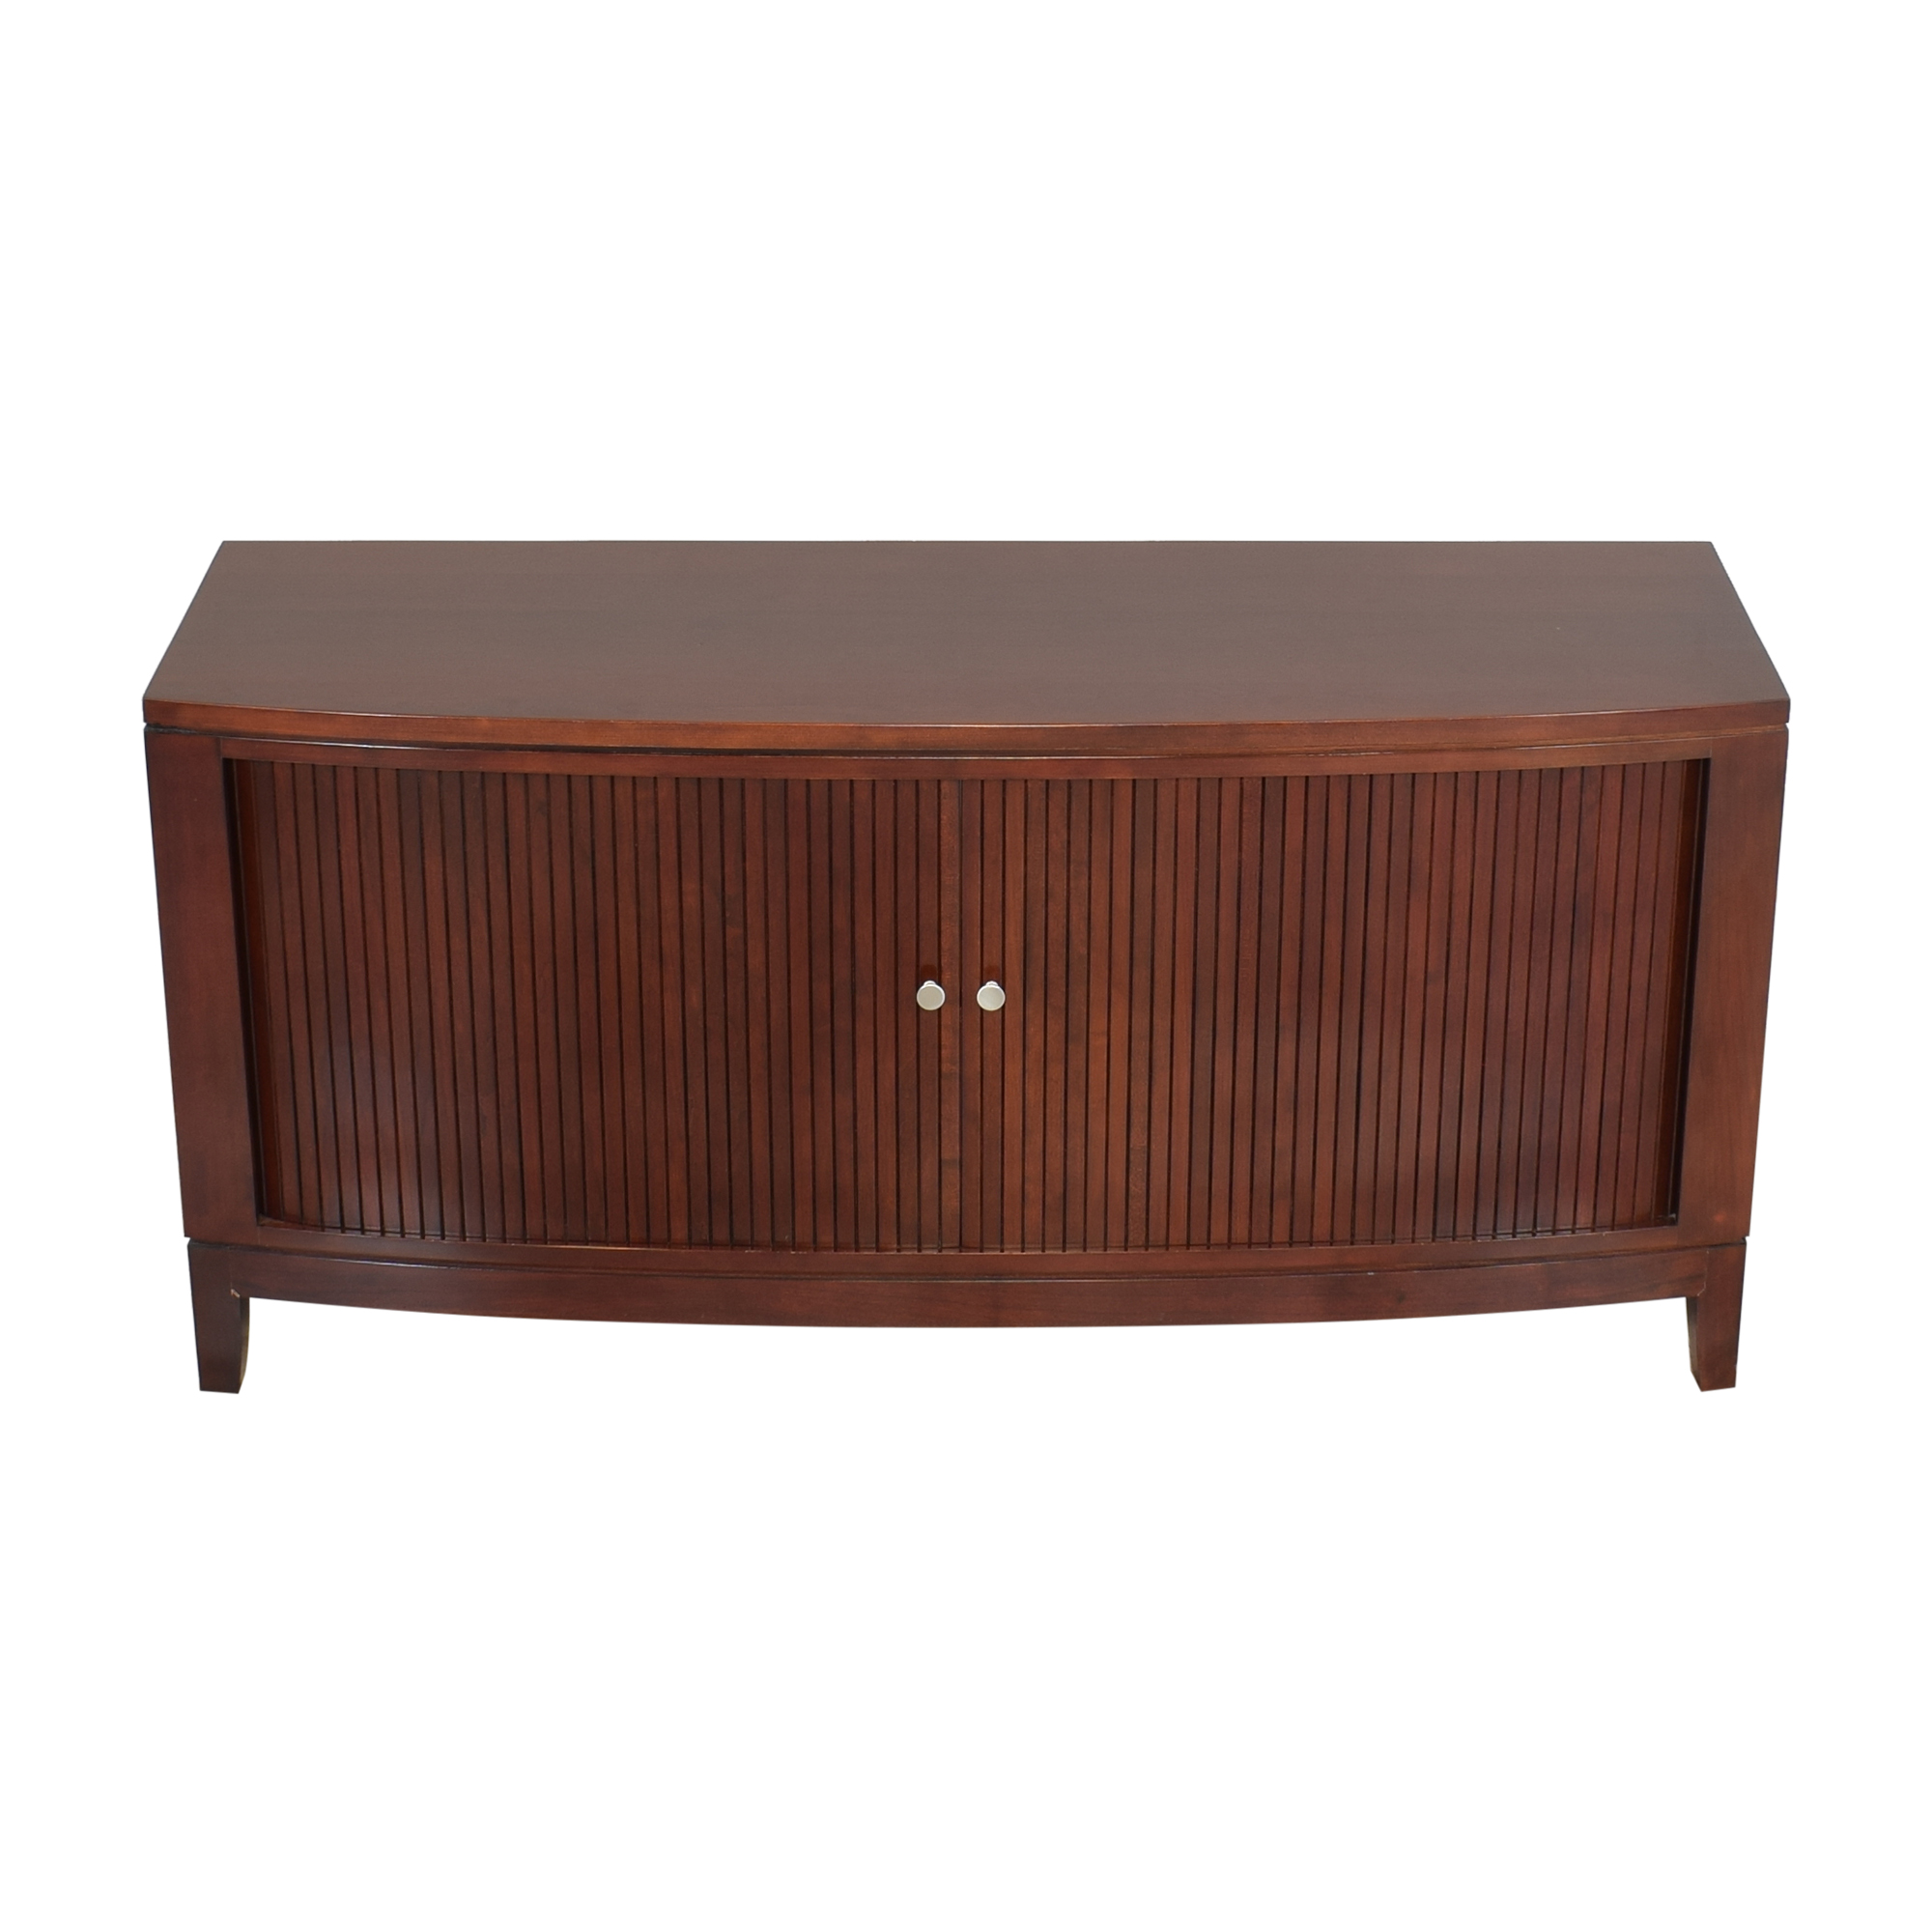 Stickley Furniture Stickley Furniture Entertainment Console coupon